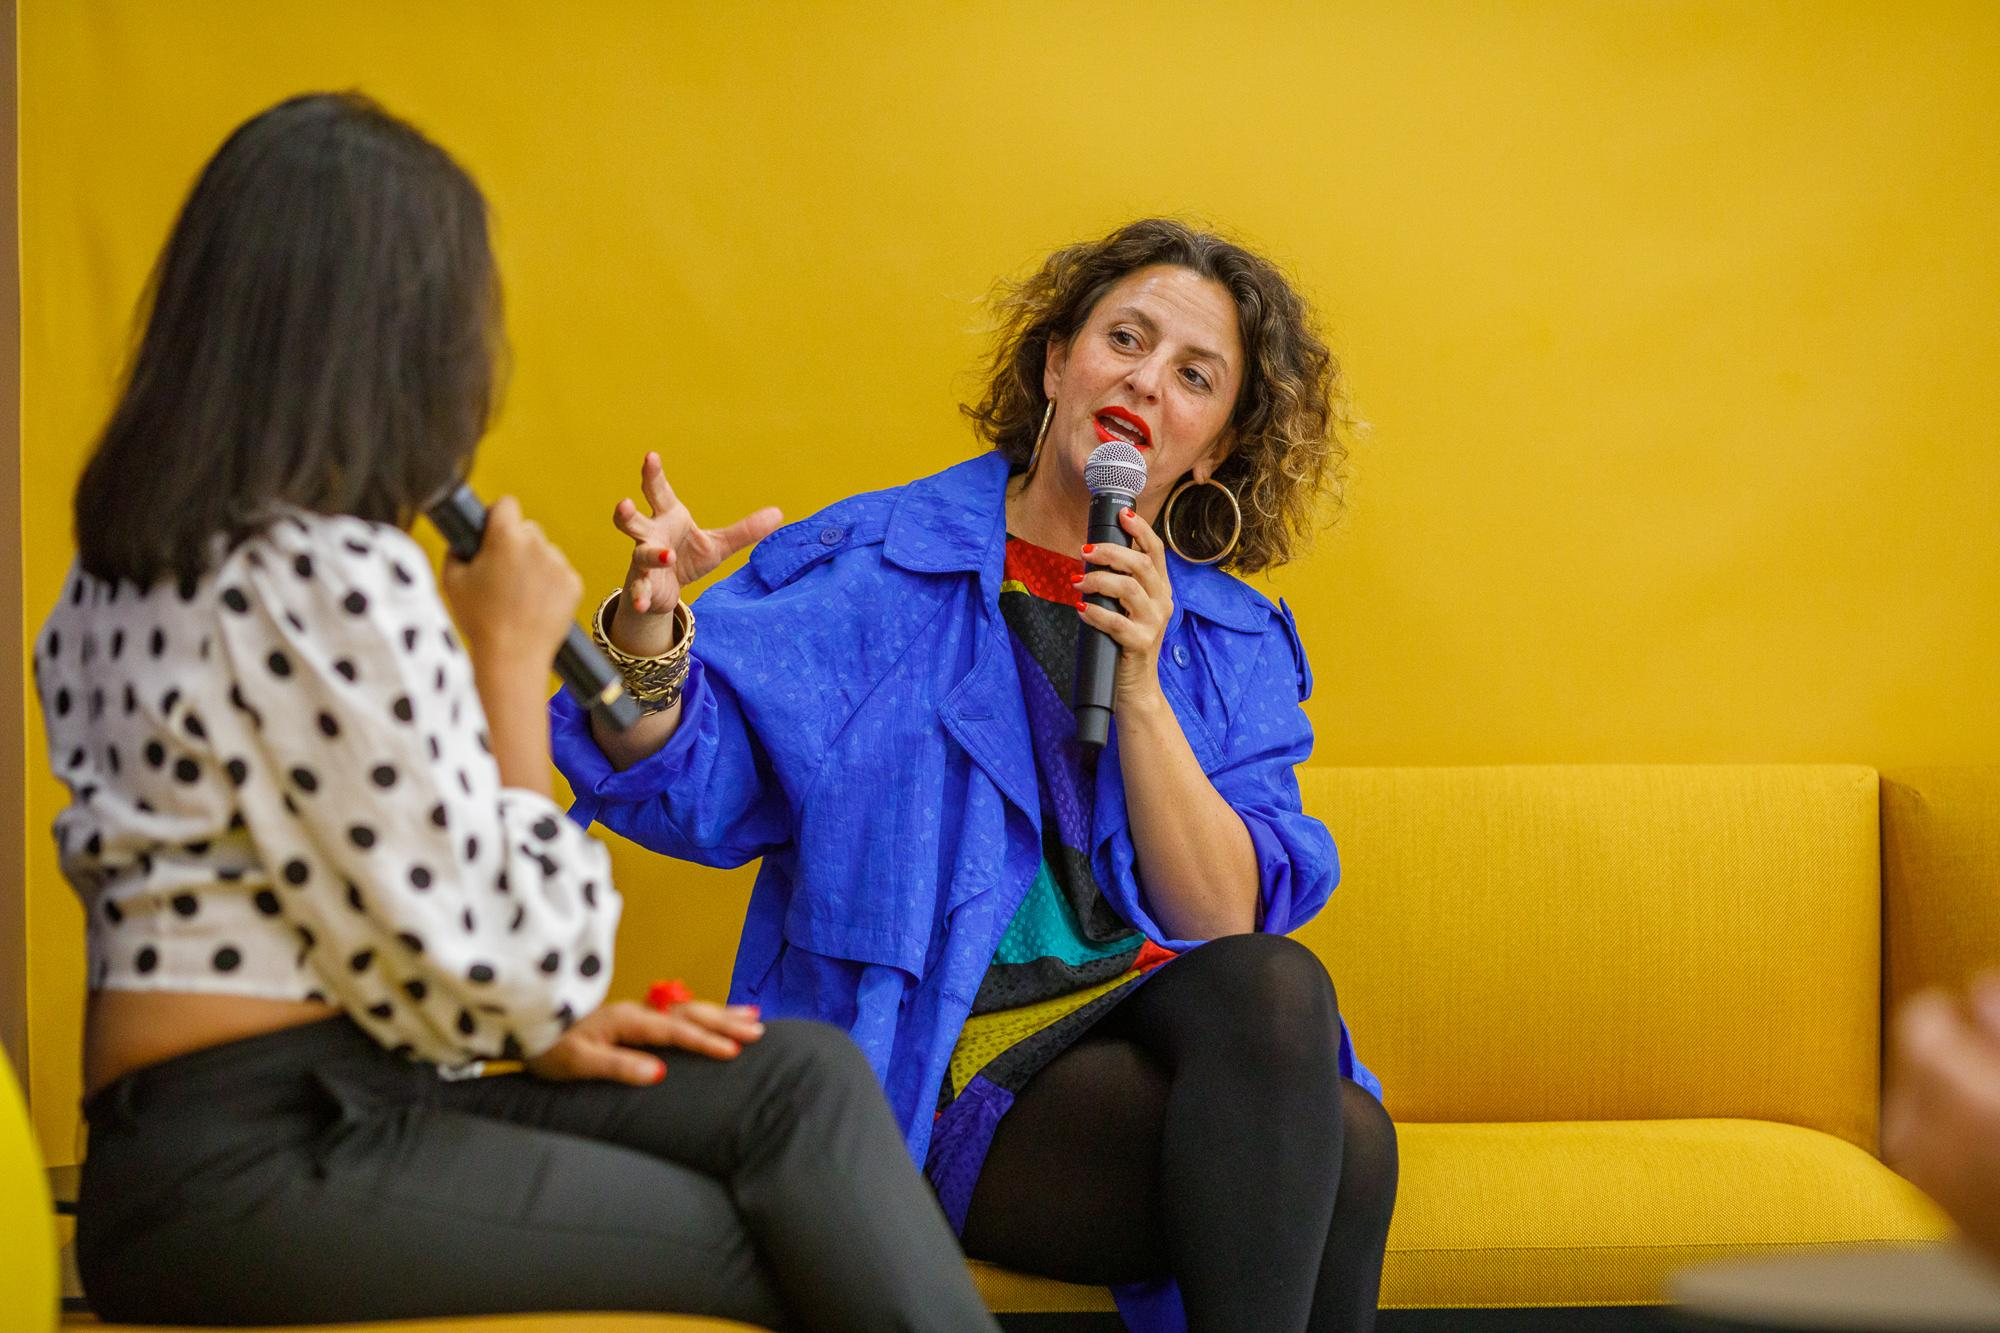 Camille Walala in Conversation with Priya Khanchandani